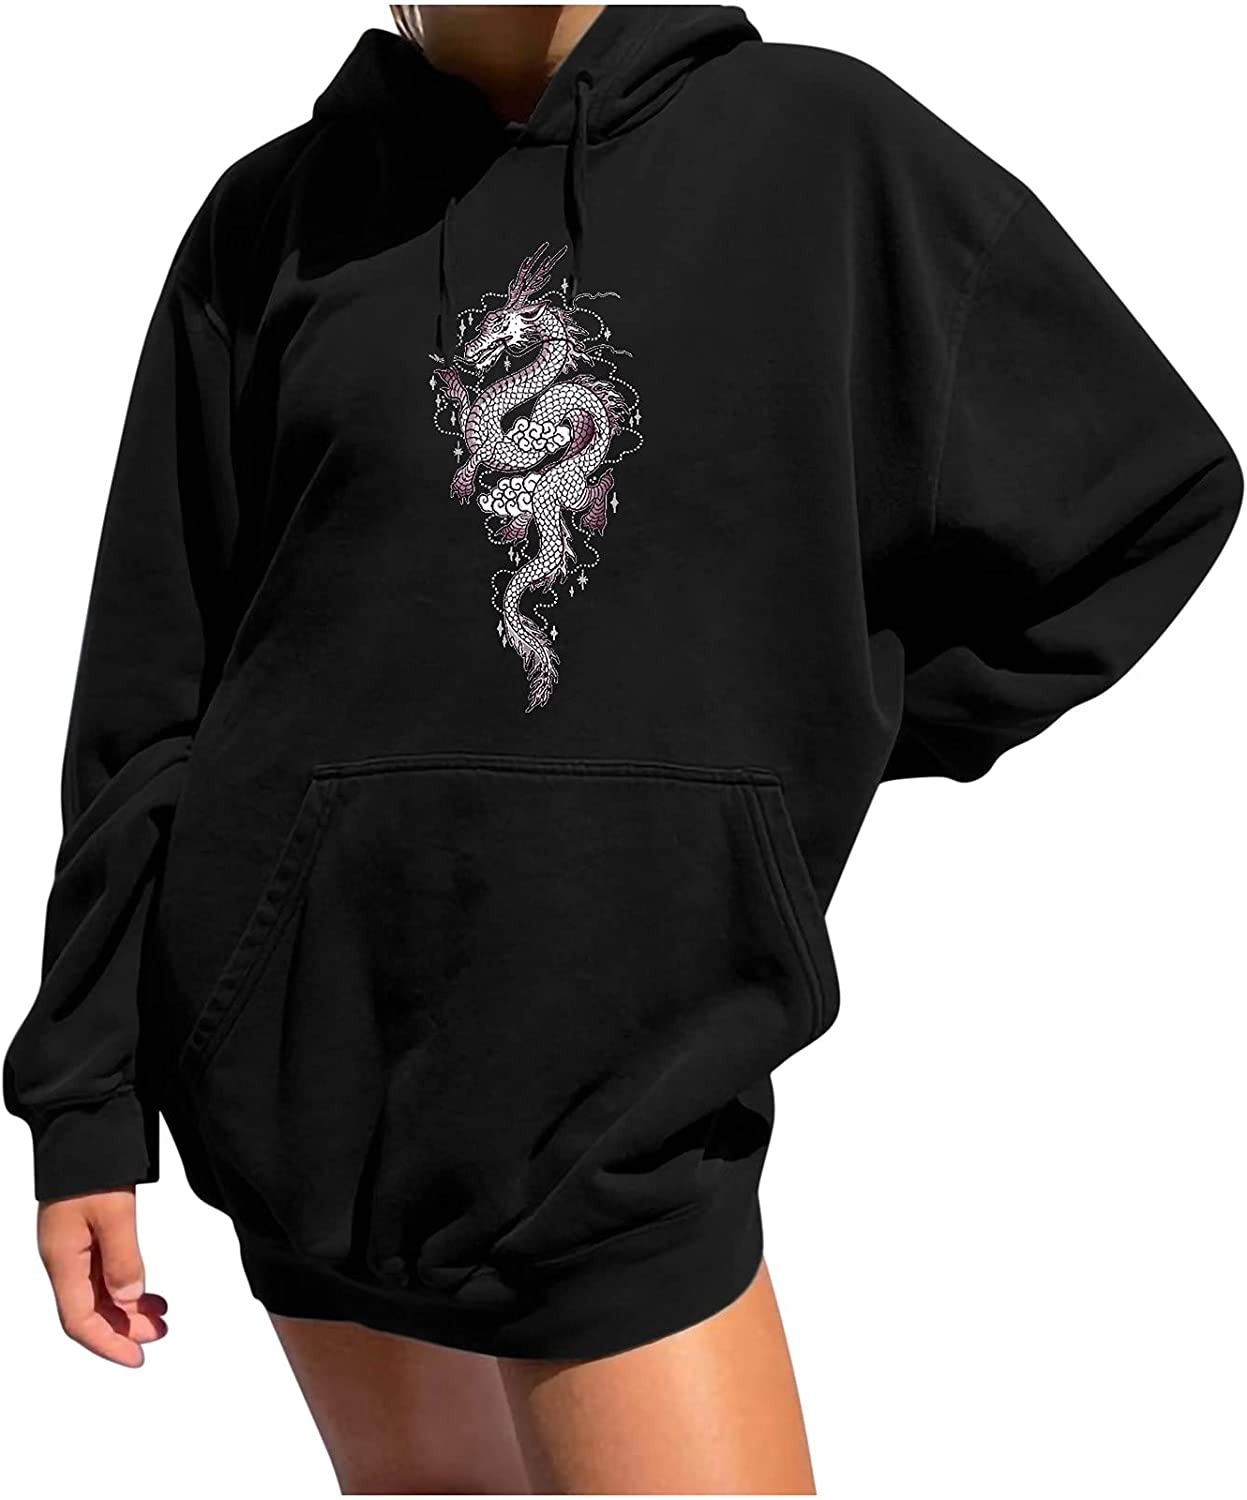 Dragon Graphic Columbus Mall Sweatshirt for Women Spring new work one after another Sleeve Costumes Vintage Long